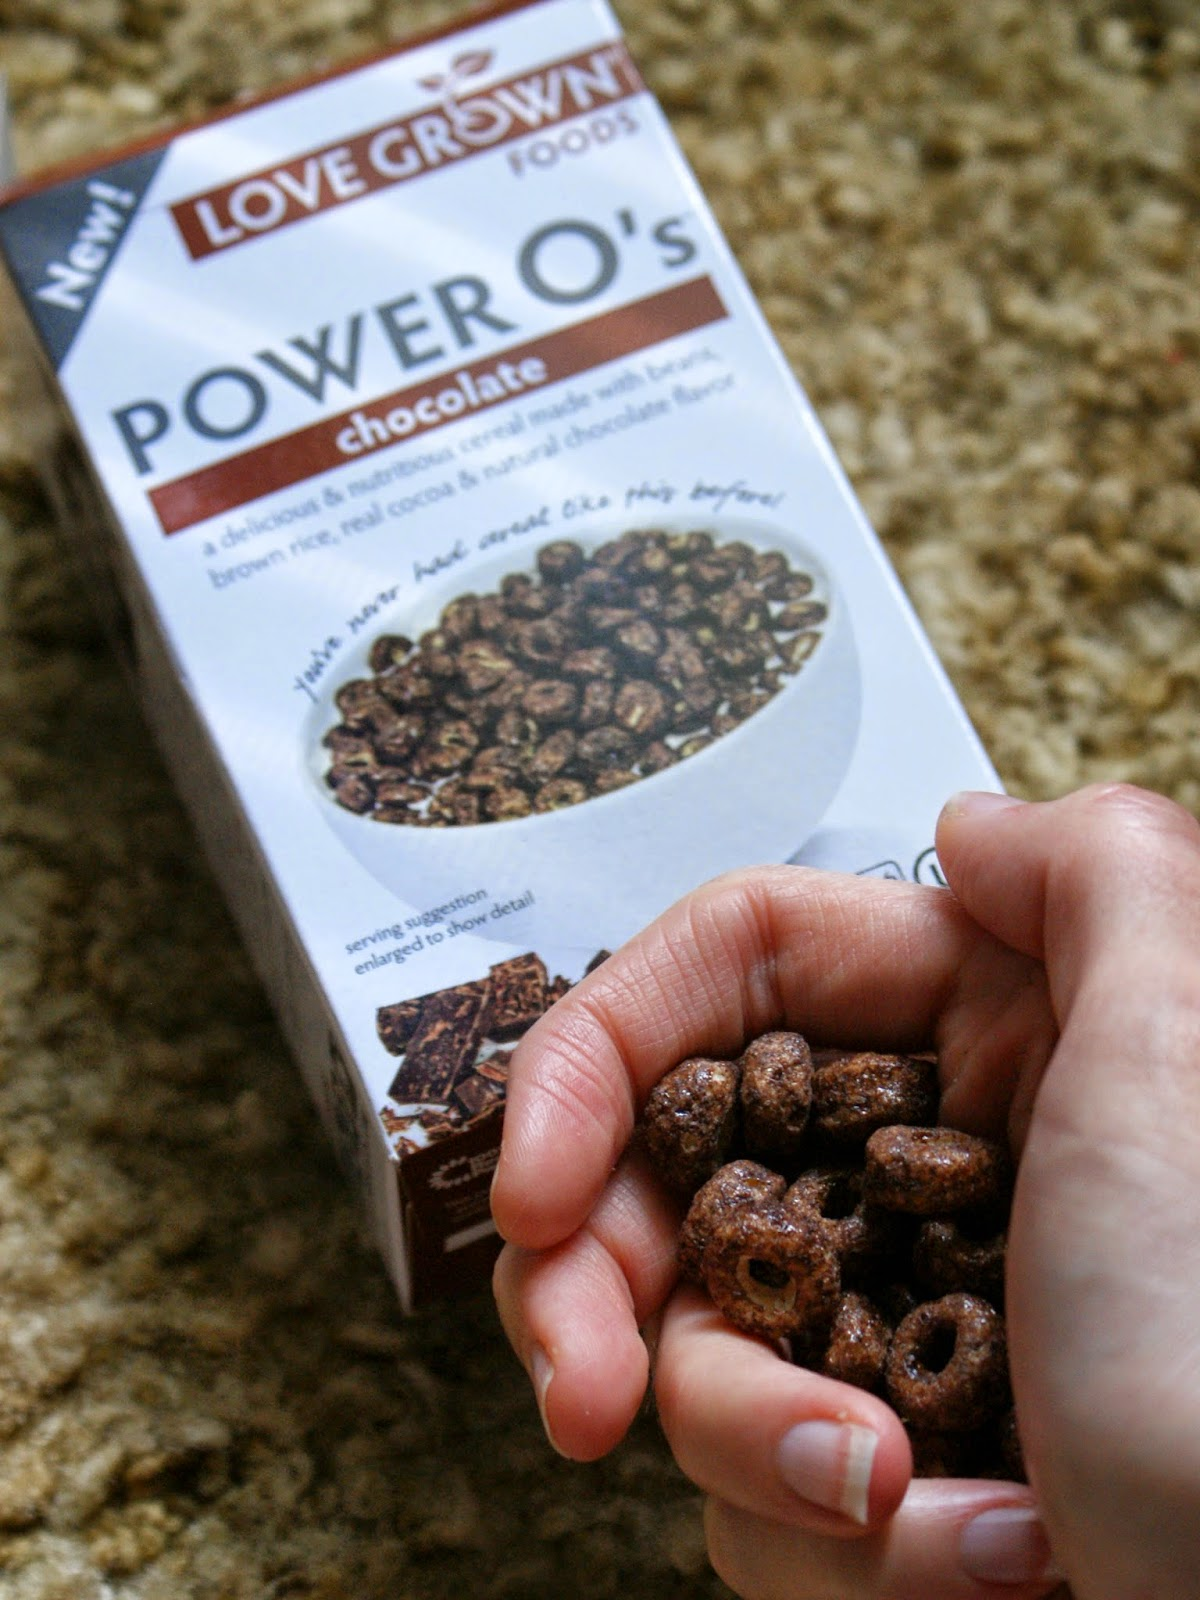 Love Grown Foods Chocolate Power O's